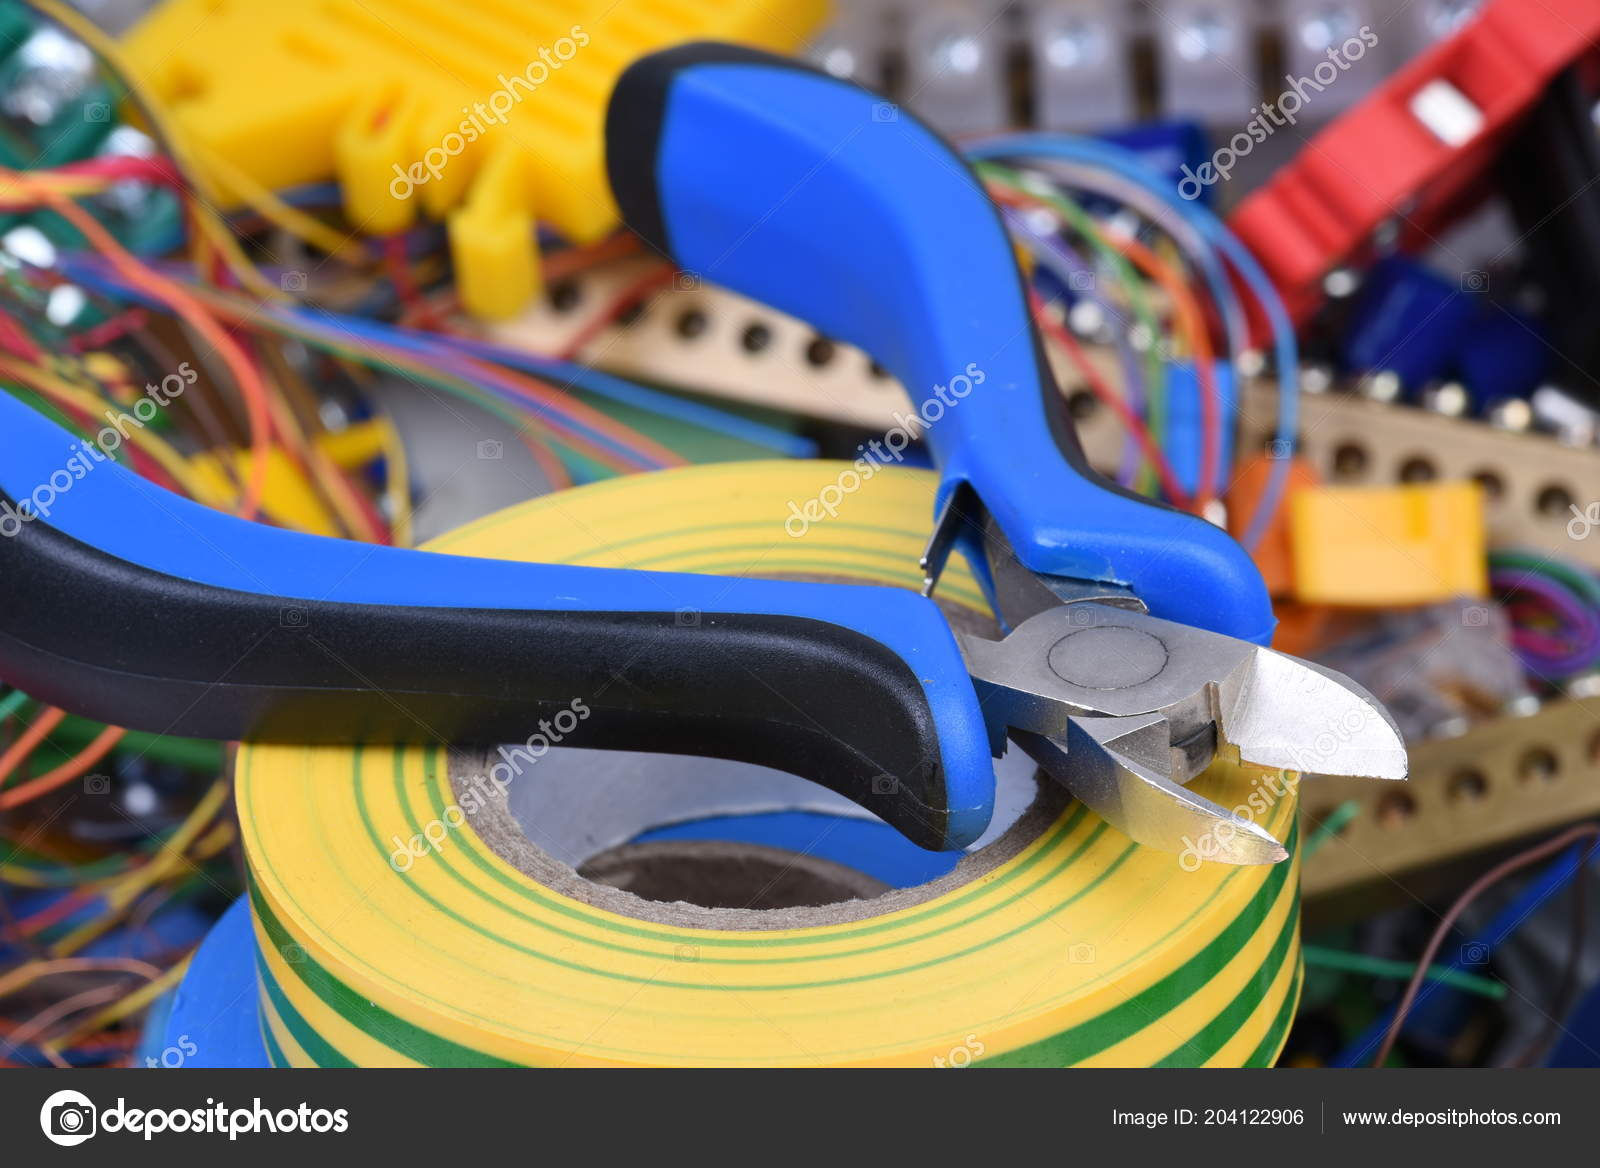 hight resolution of tools cables used electrical home installation stock photo